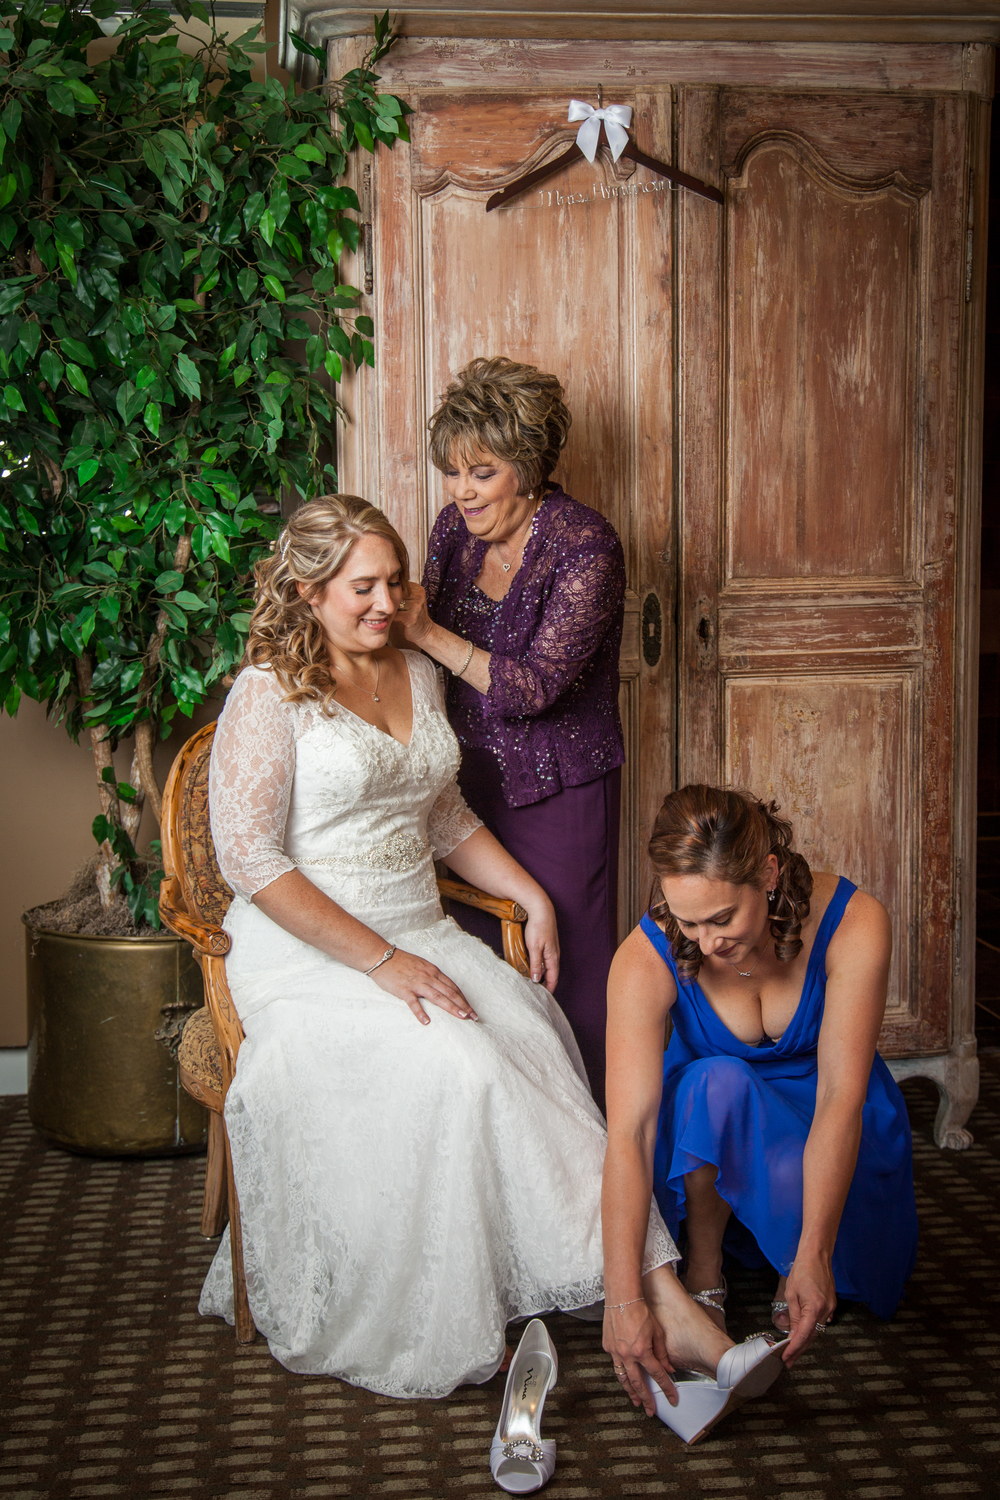 The beautiful bride in a white lace wedding gown gets ready for the ceremony with the help of her mother and sister.